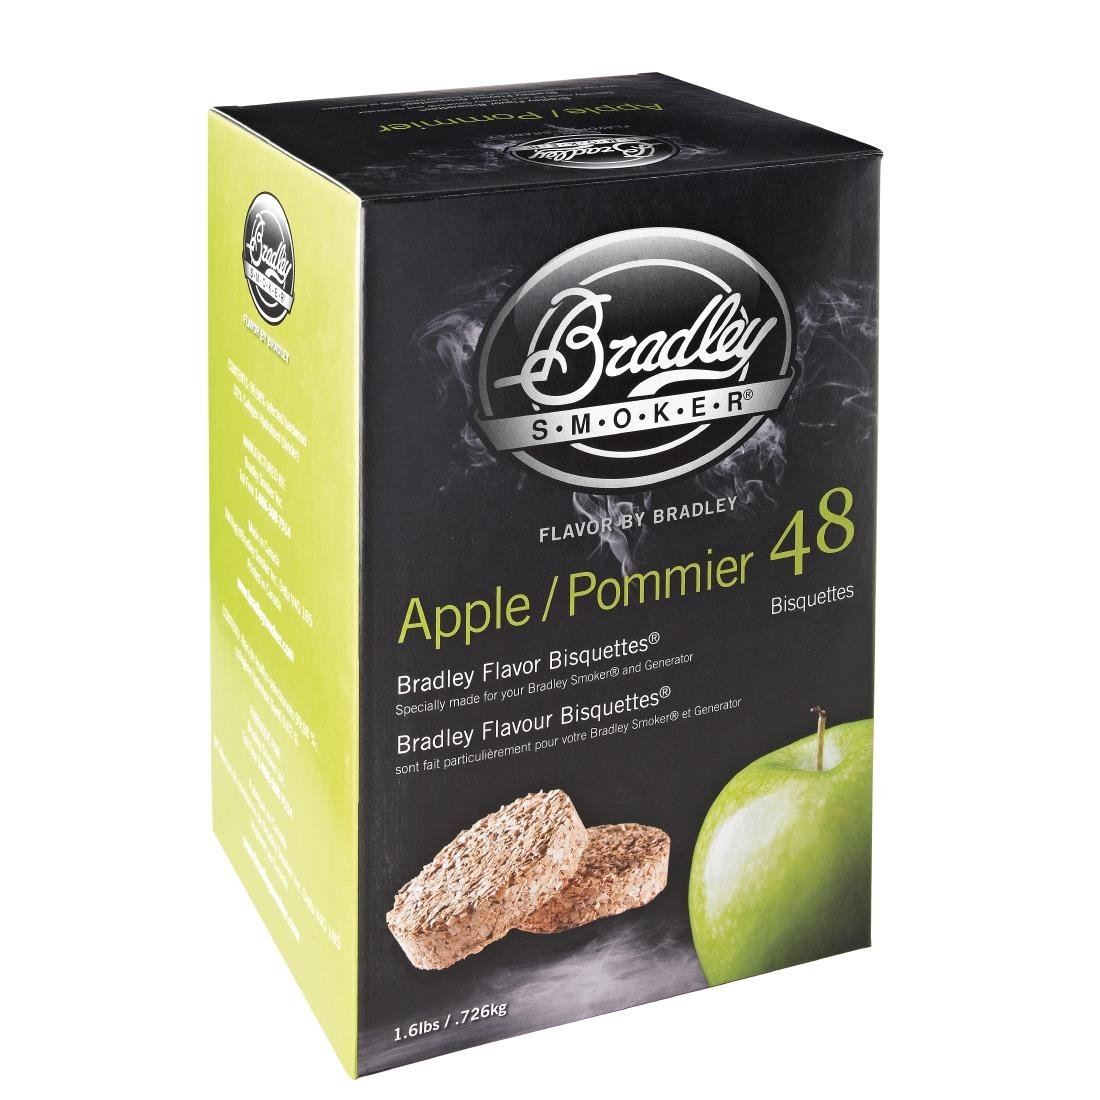 Image of Bradley Food Smoker Bisquettes BTAP48 (Pack of 48) Pack of 48